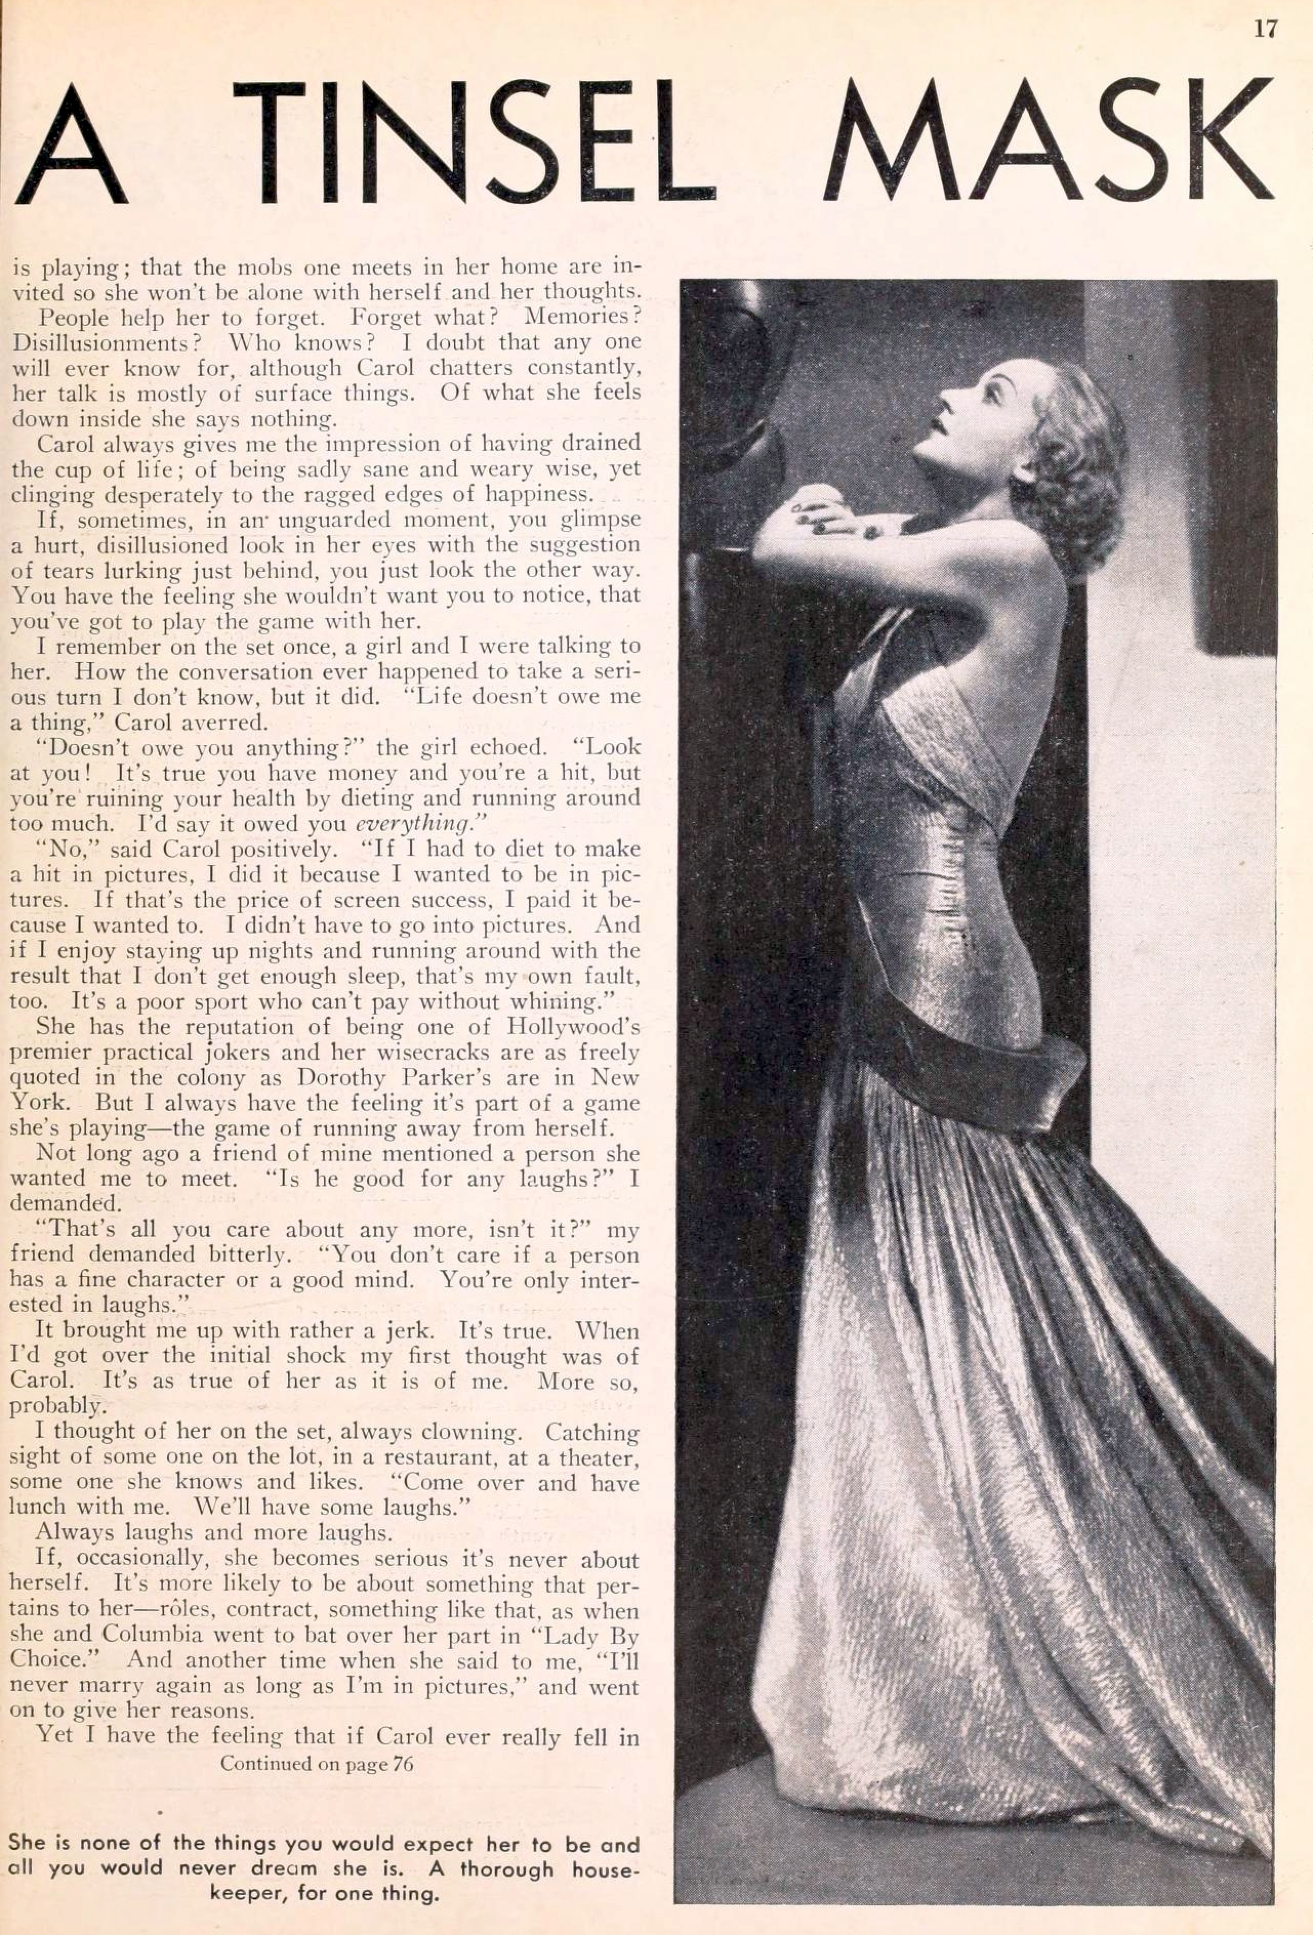 carole lombard picture play feb 1935 tears behind a tinsel mask 01a